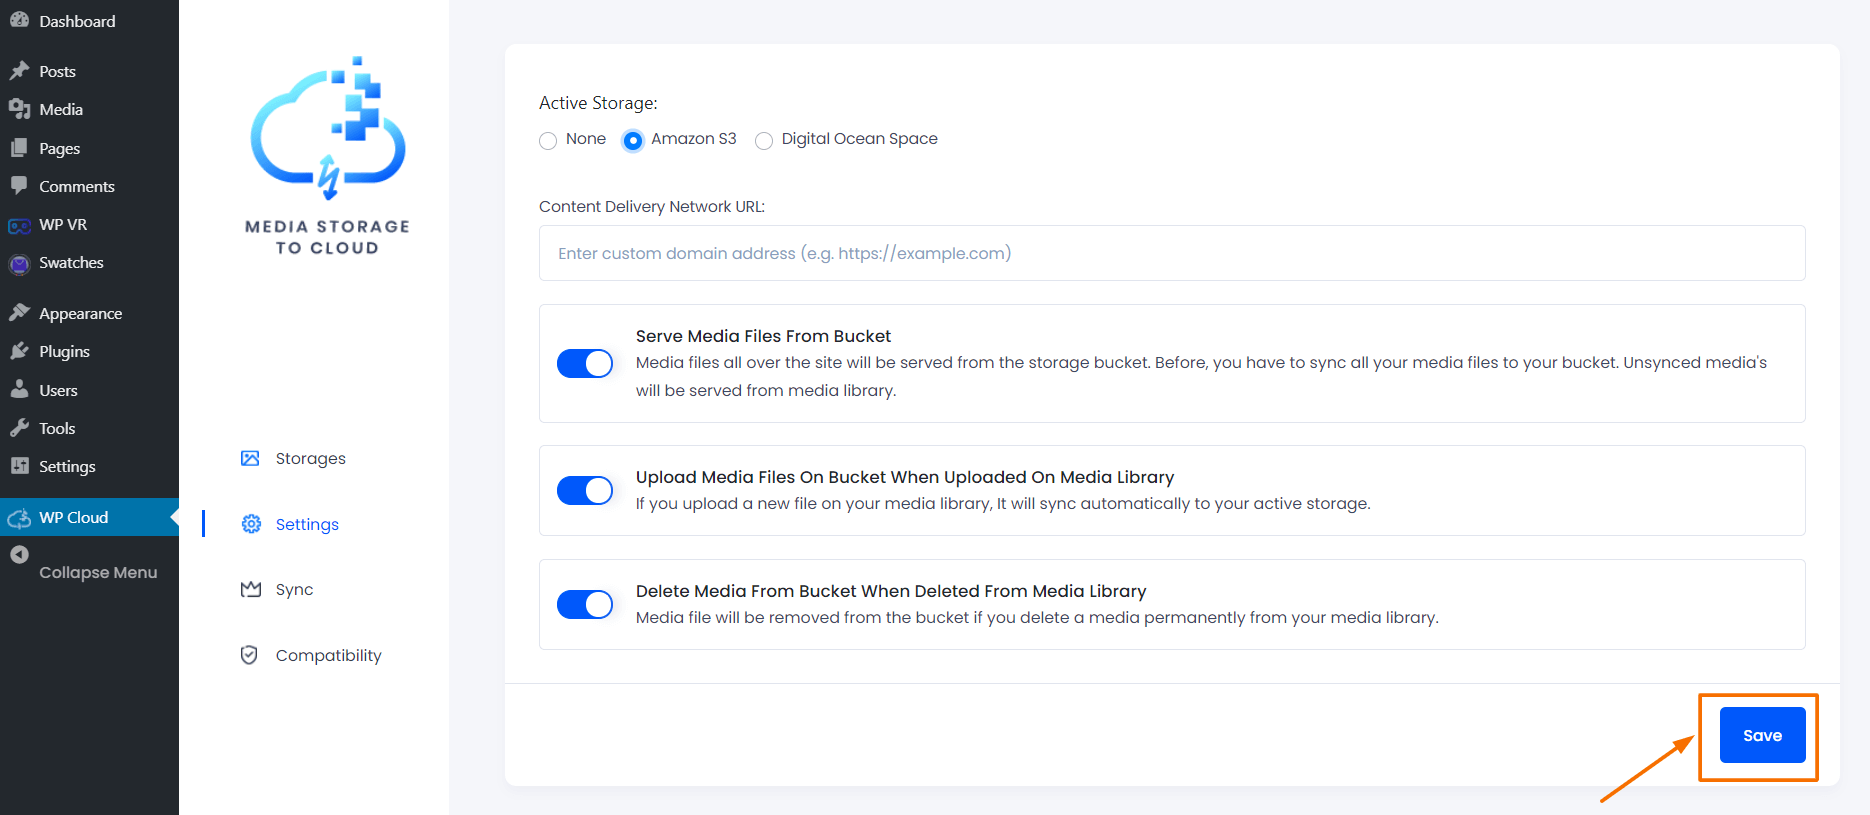 Media Storage to Cloud Settings Page